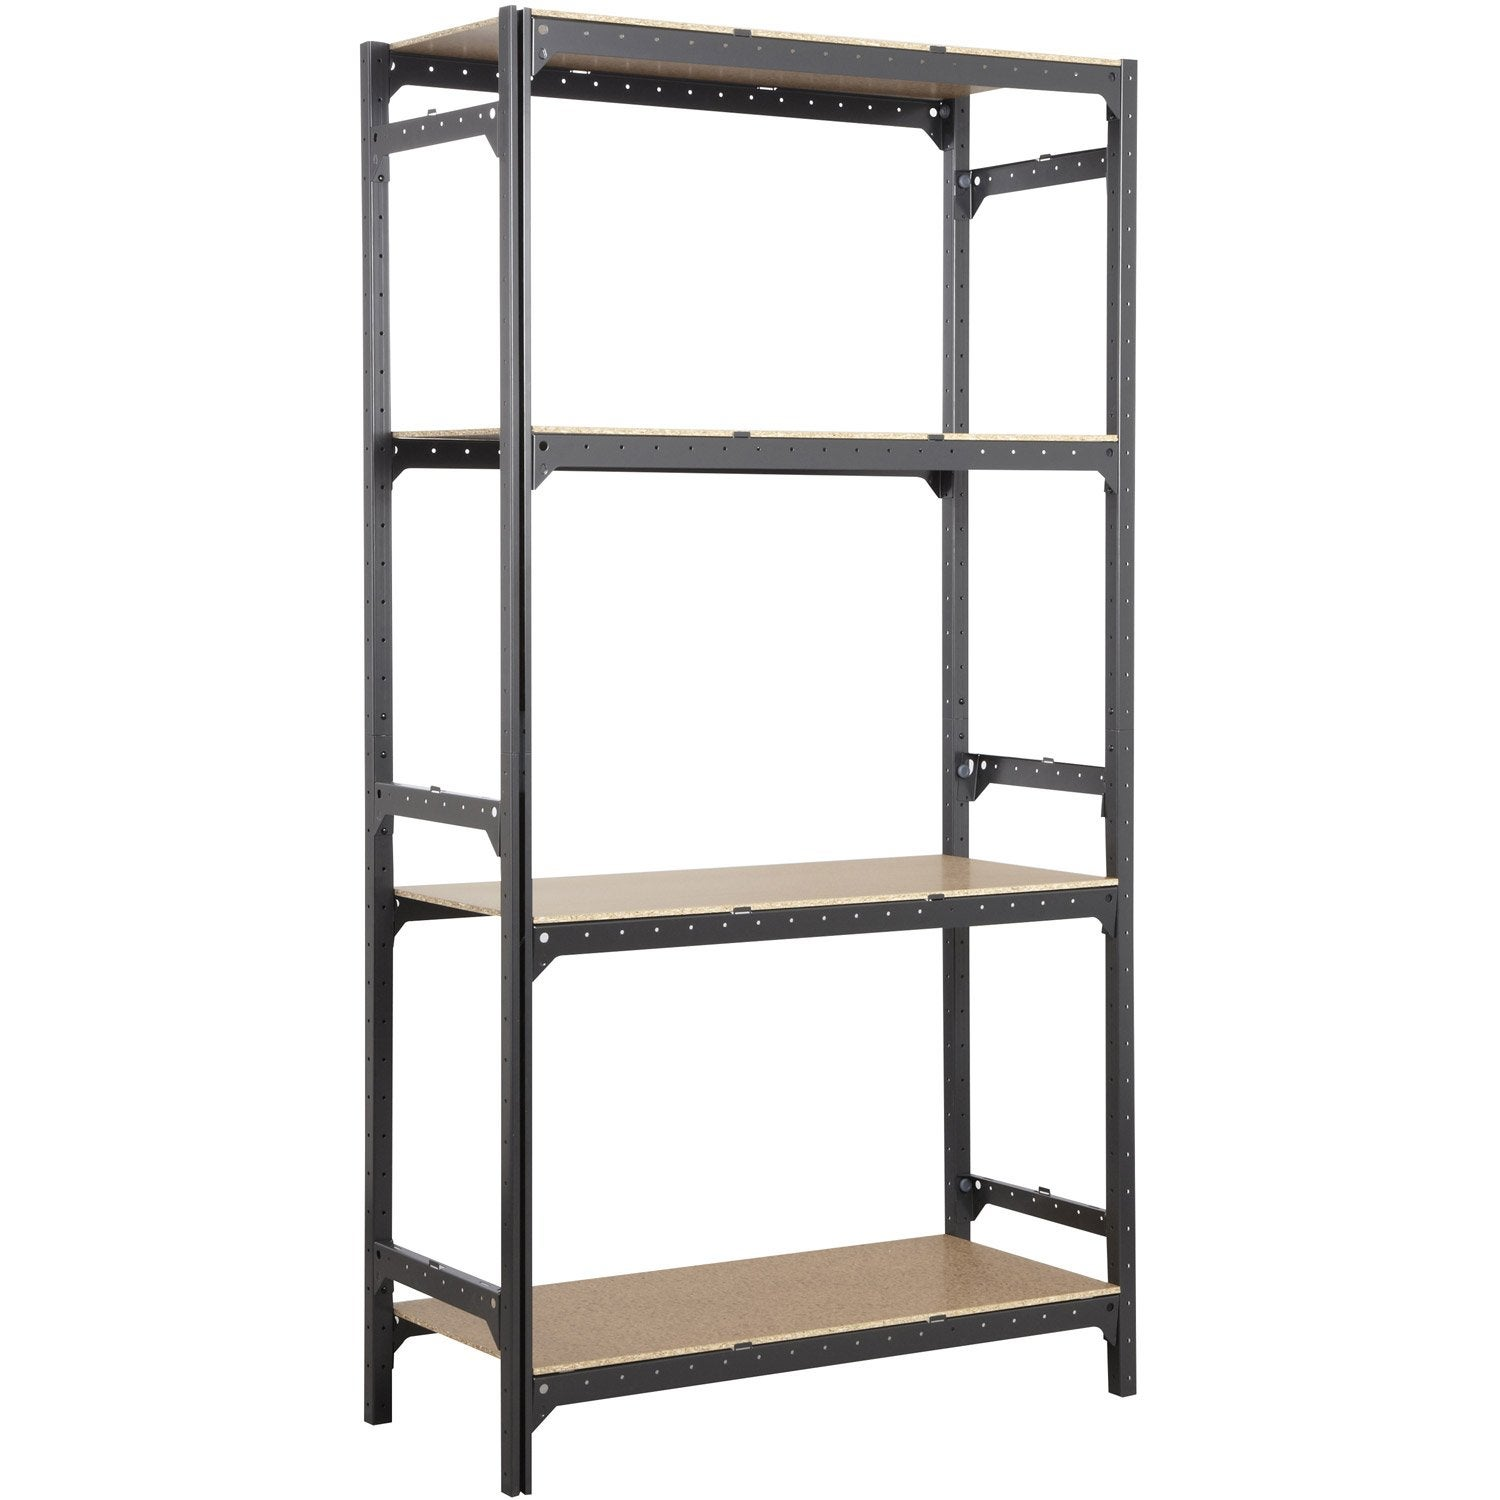 Etag re acier spaceo hubsystem 4 tablettes gris charbon - Etagere metallique modulable ...